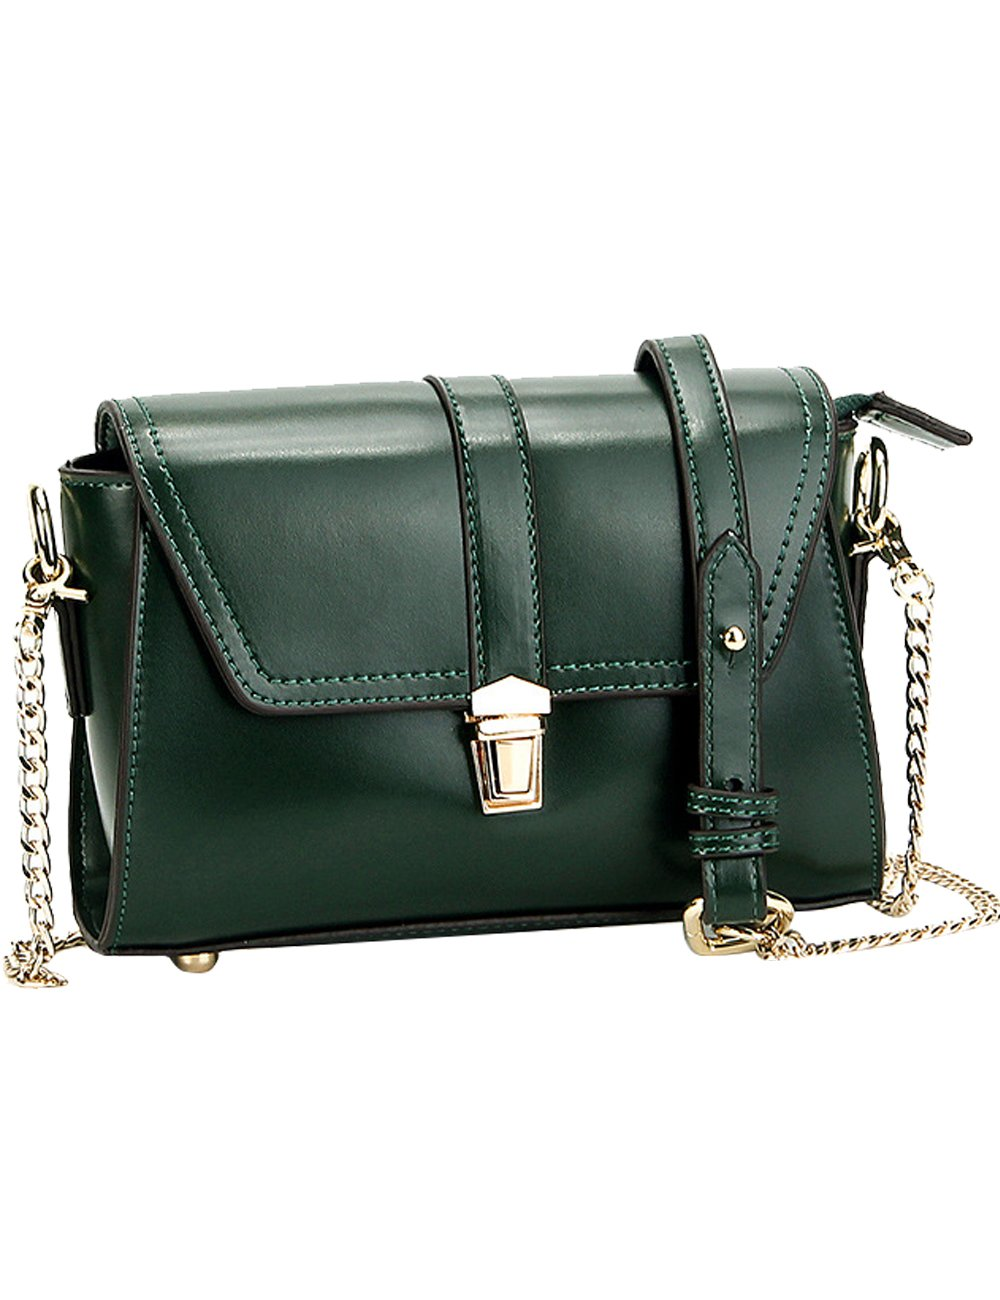 Menschwear Womens Genuine Leather Cross-body Bag Green